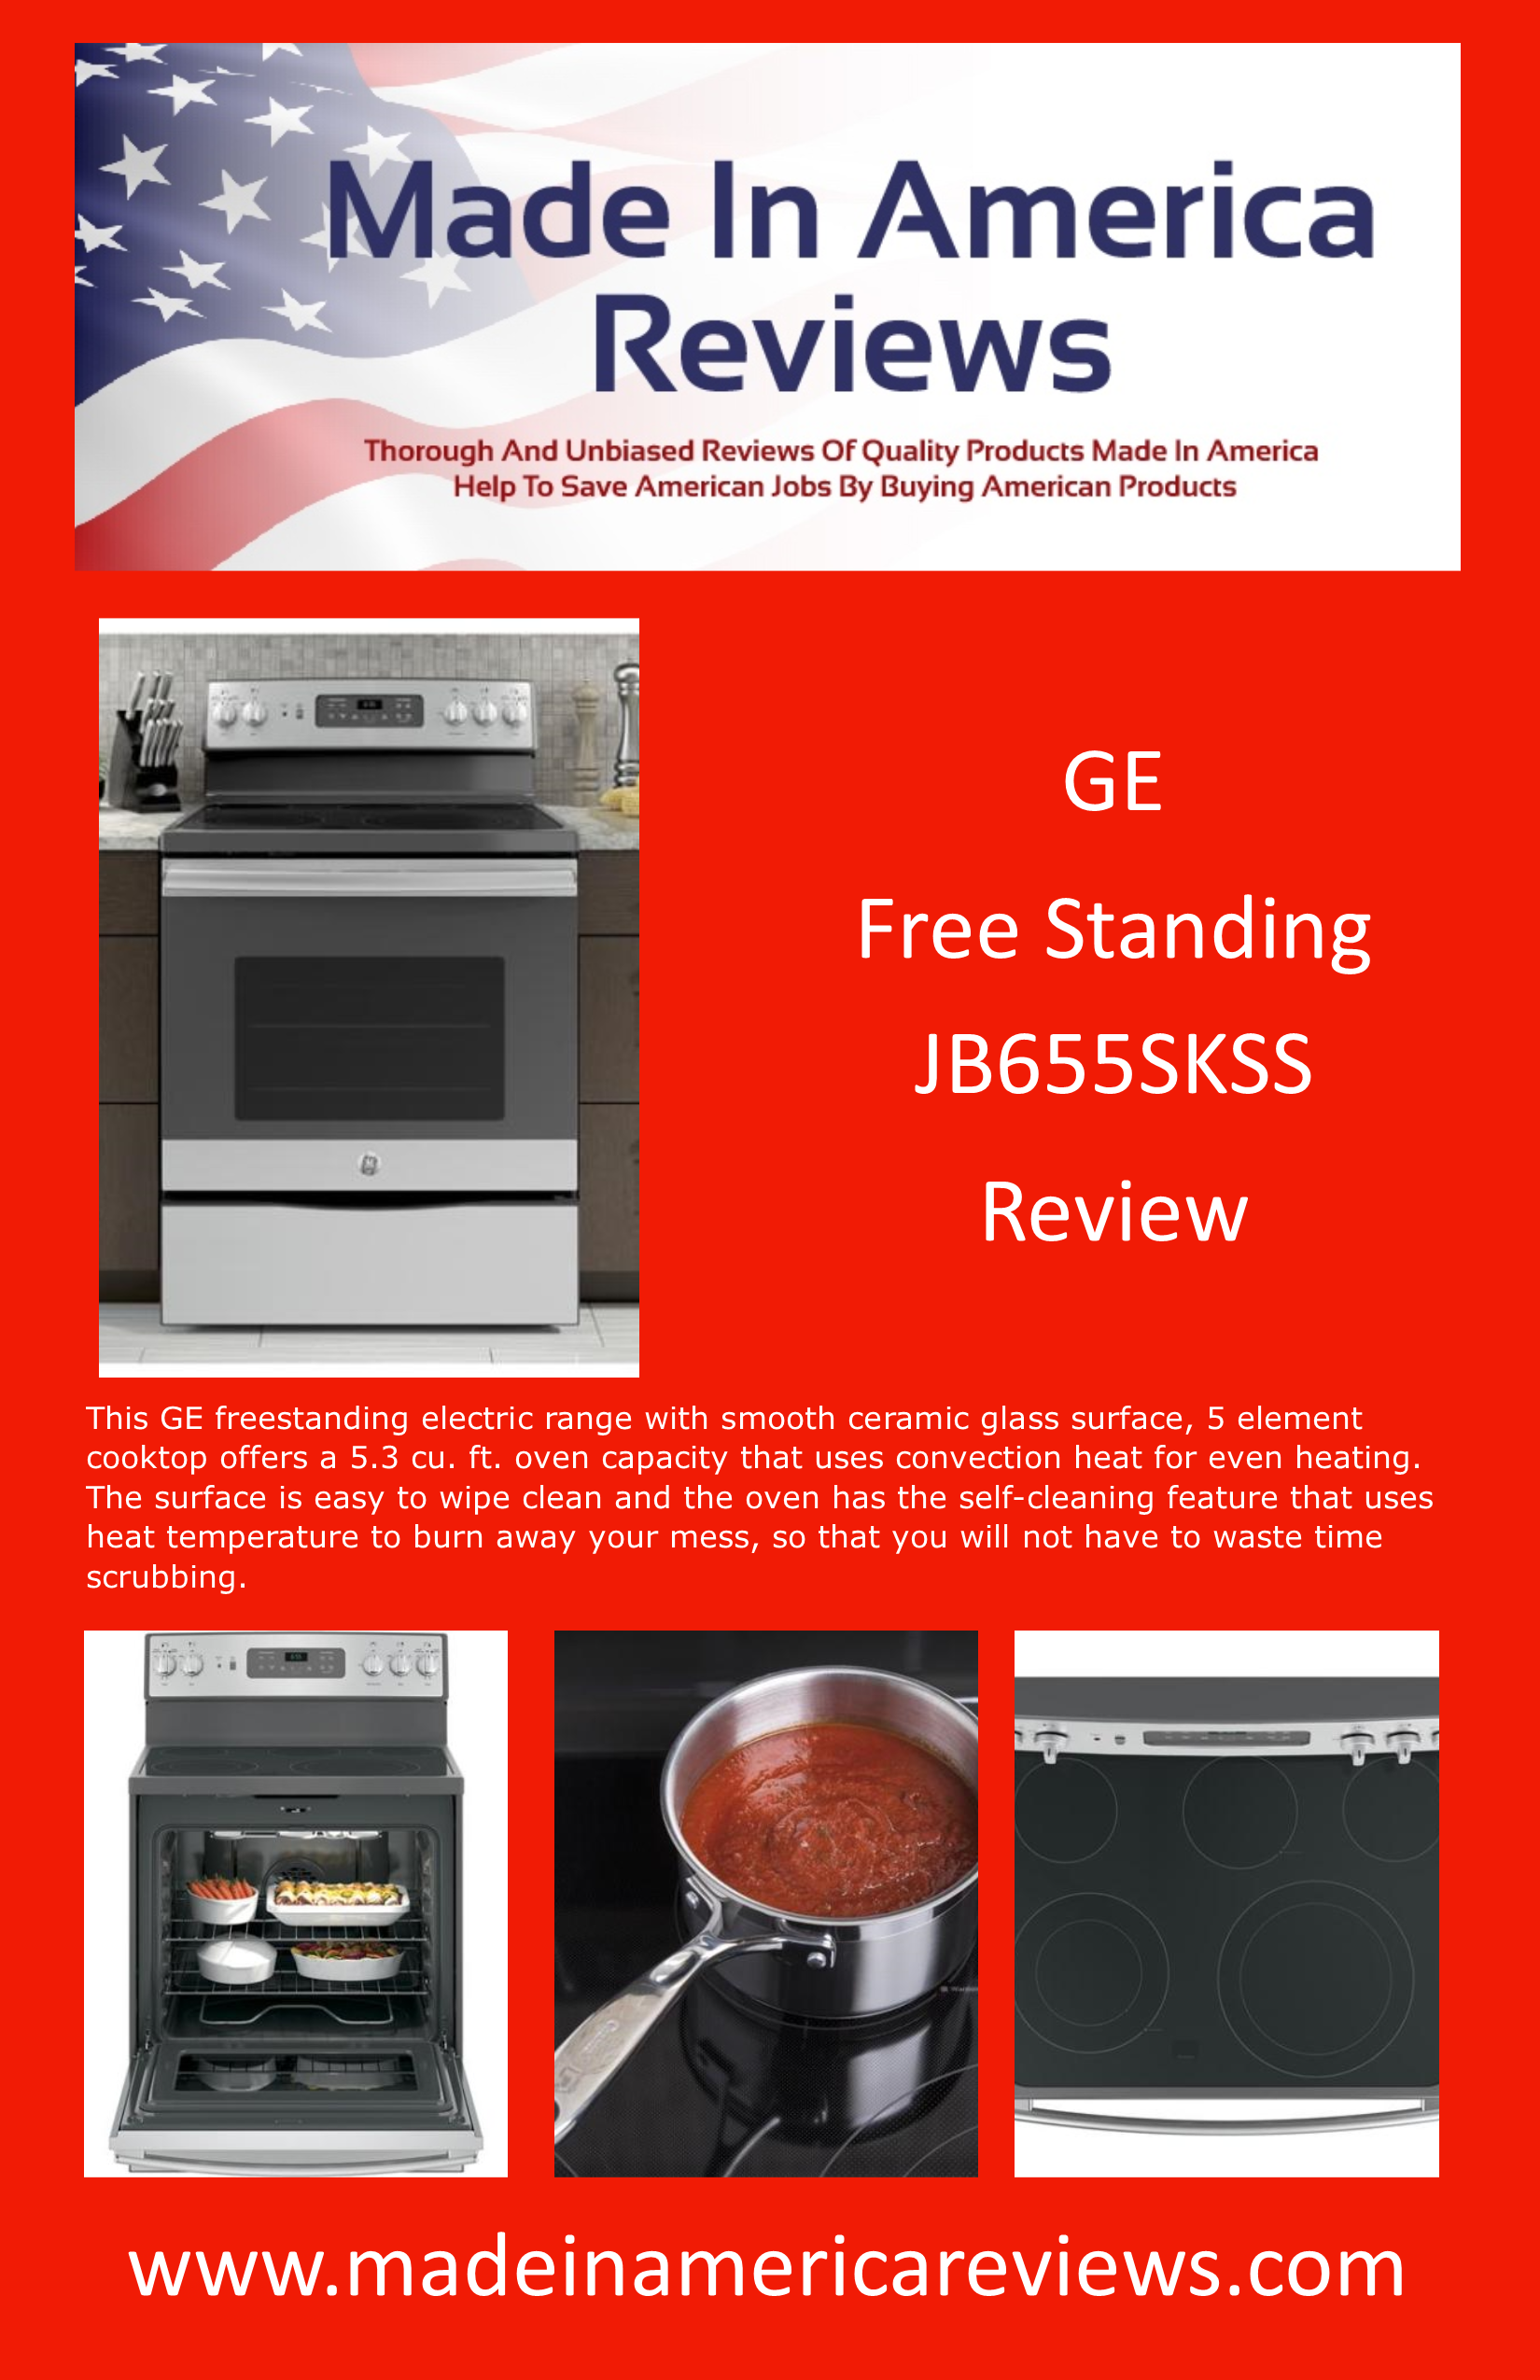 We Provide A Thorough And Honest Review Of The Made In America Ge Free Standing Jb655skss Range With Photos Specifications User Reviews